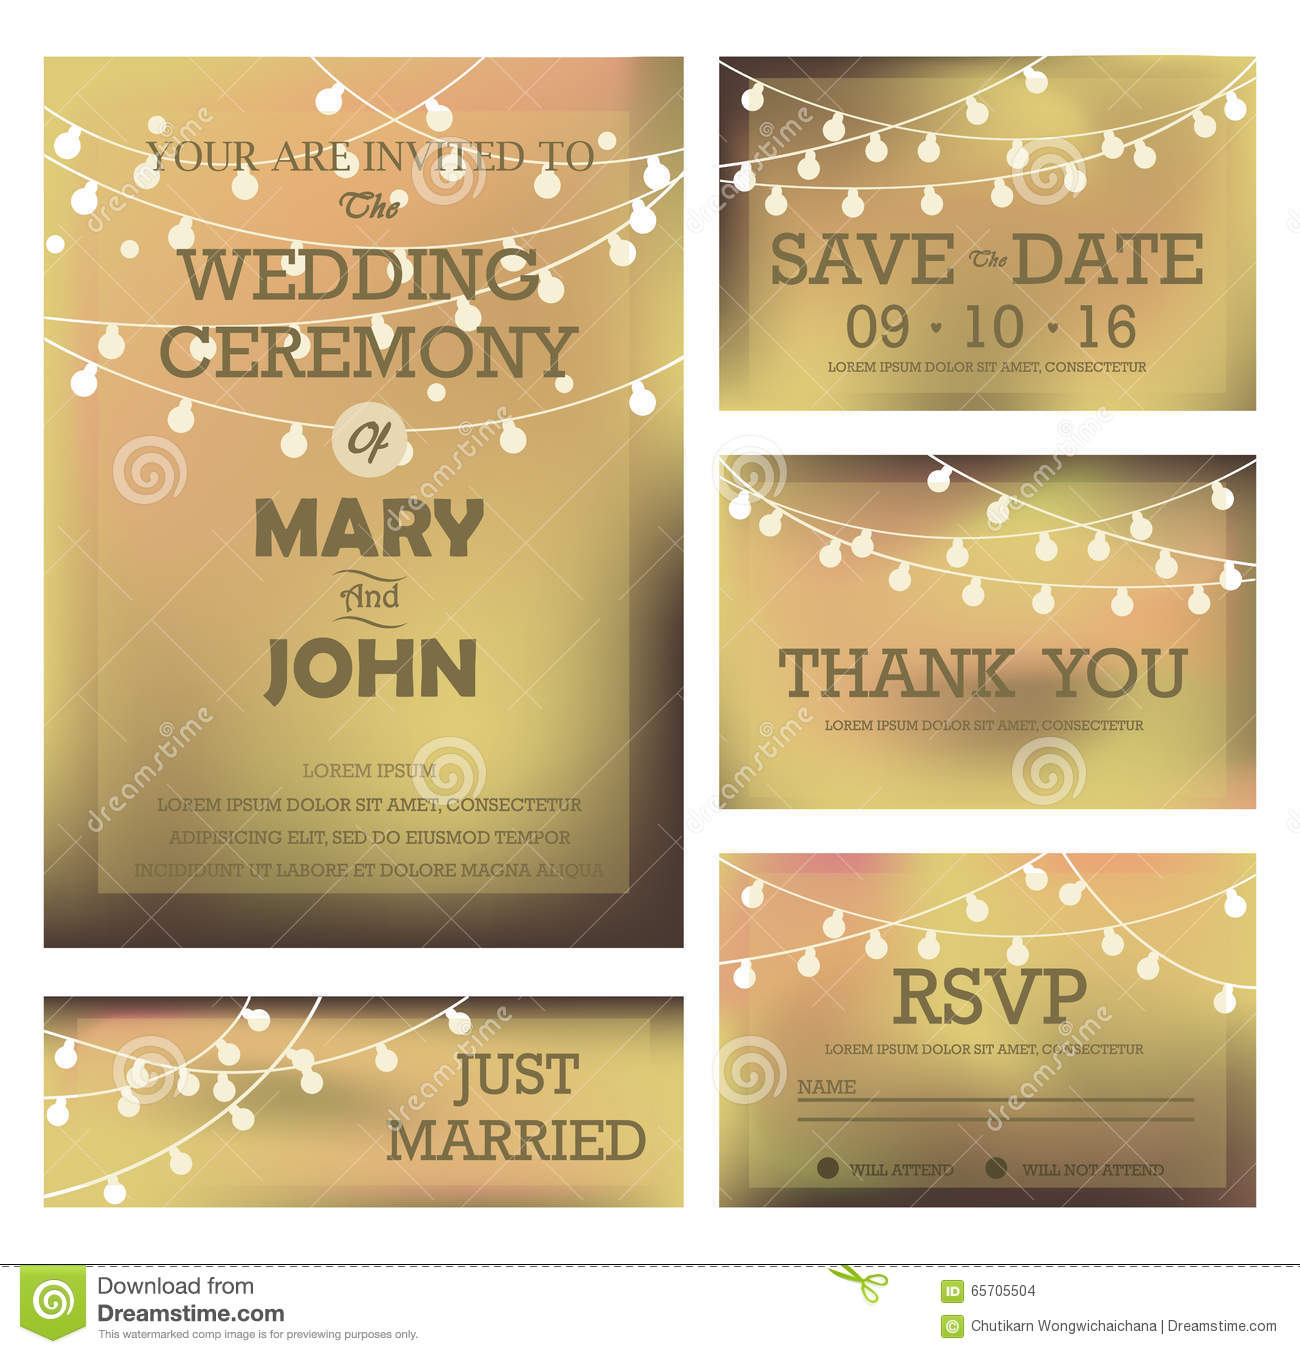 wedding invitation banners | Wedding